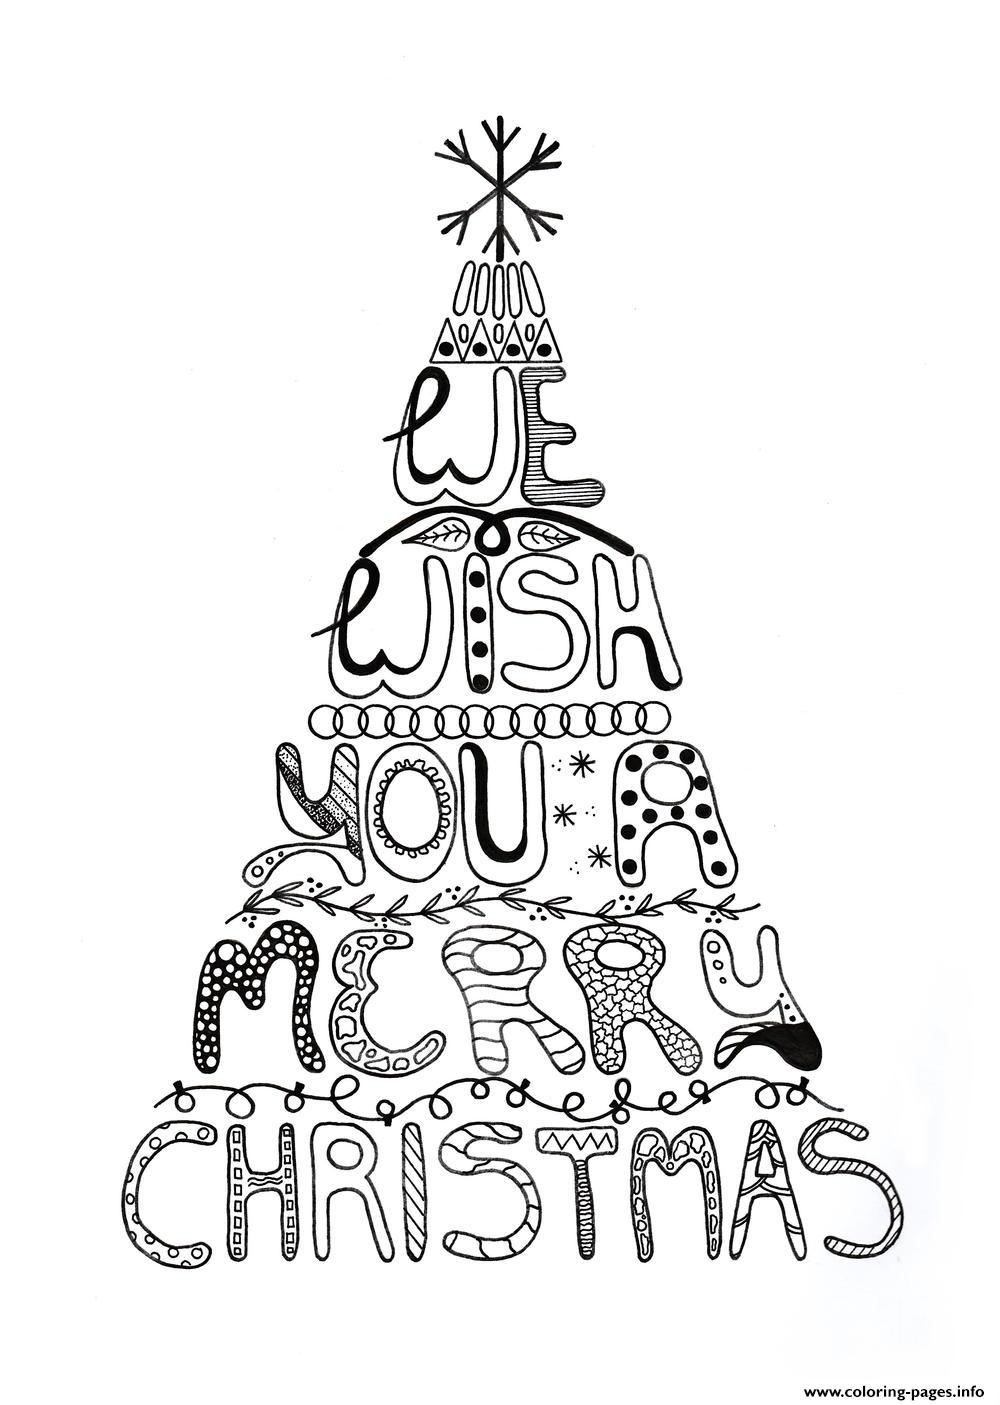 Merry Christmas Tree Coloring Page With Adult Pages Printable